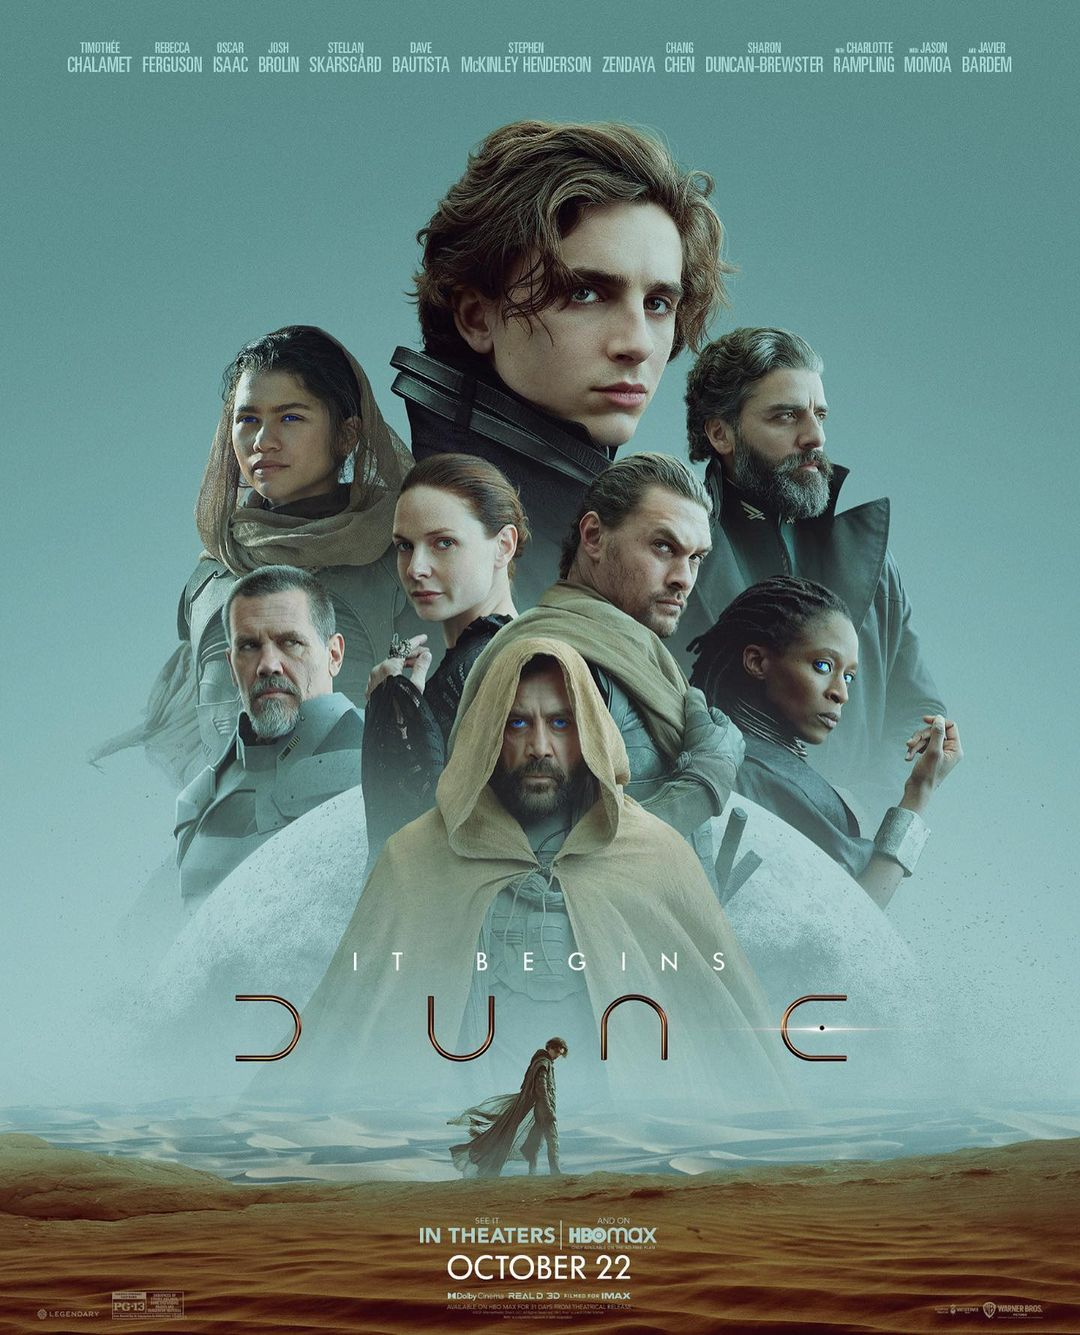 dune (2021) Feature adaptation of Frank Herbert's science fiction novel, about the son of a noble family entrusted with the protection of the most valuable asset and most vital element in the galaxy.